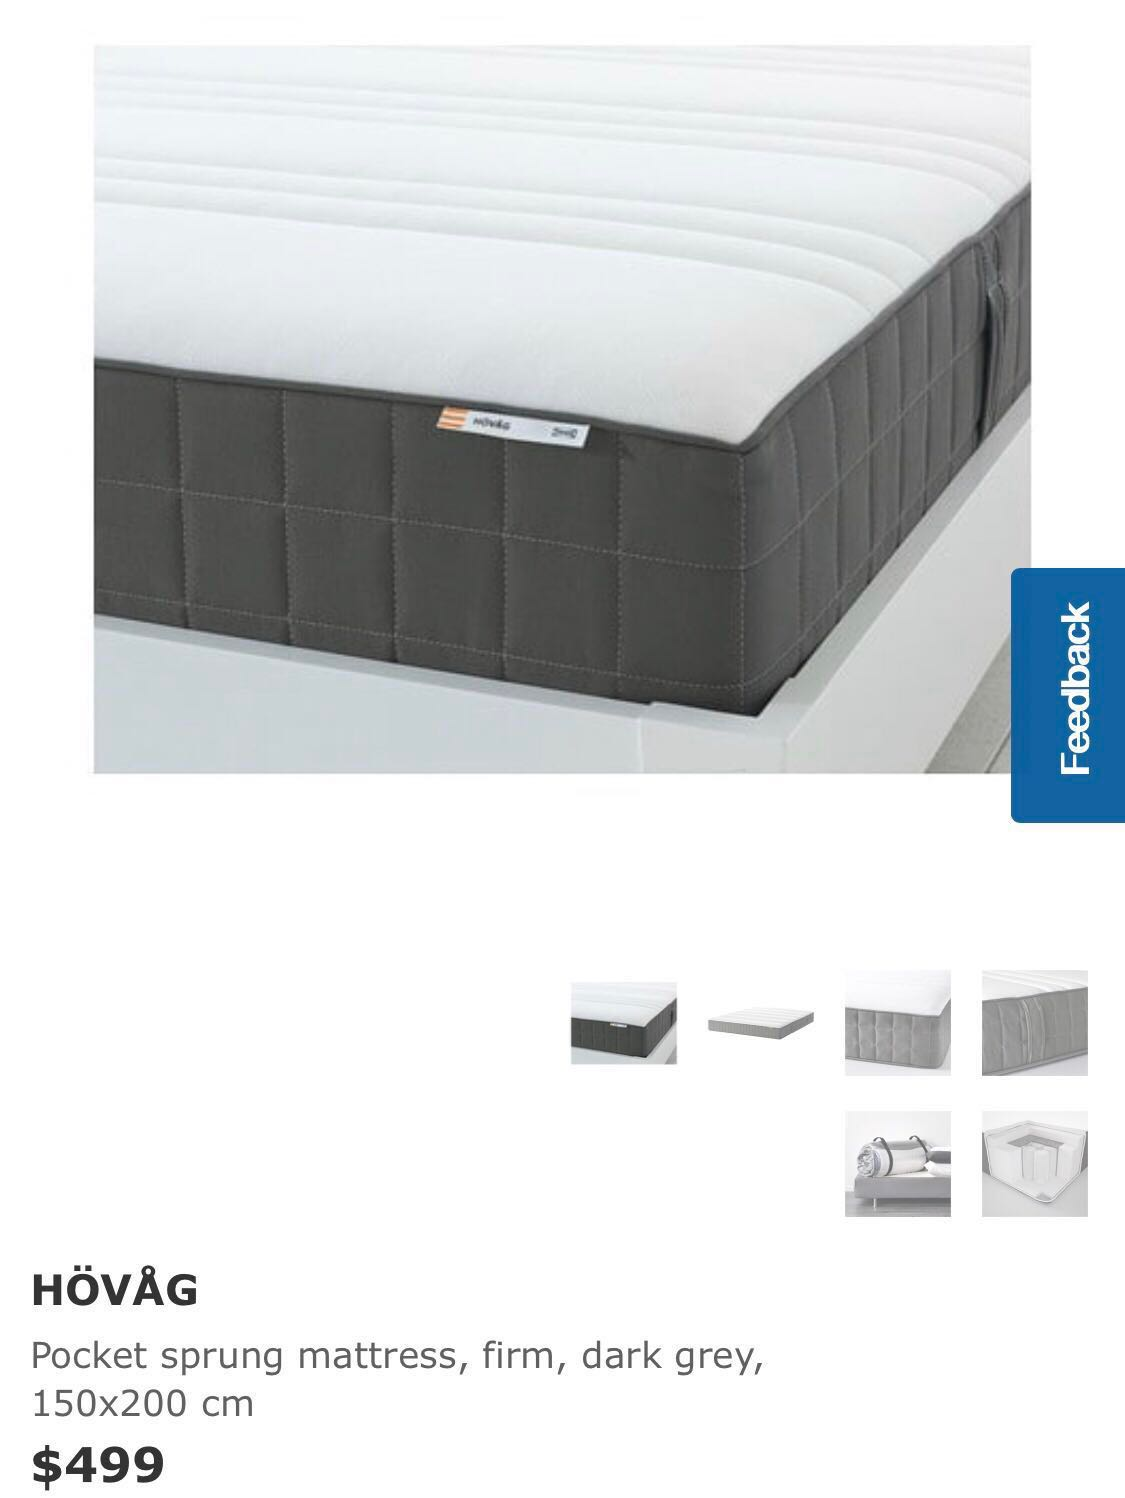 Hovag Mattress Ikea Hovag Mattress